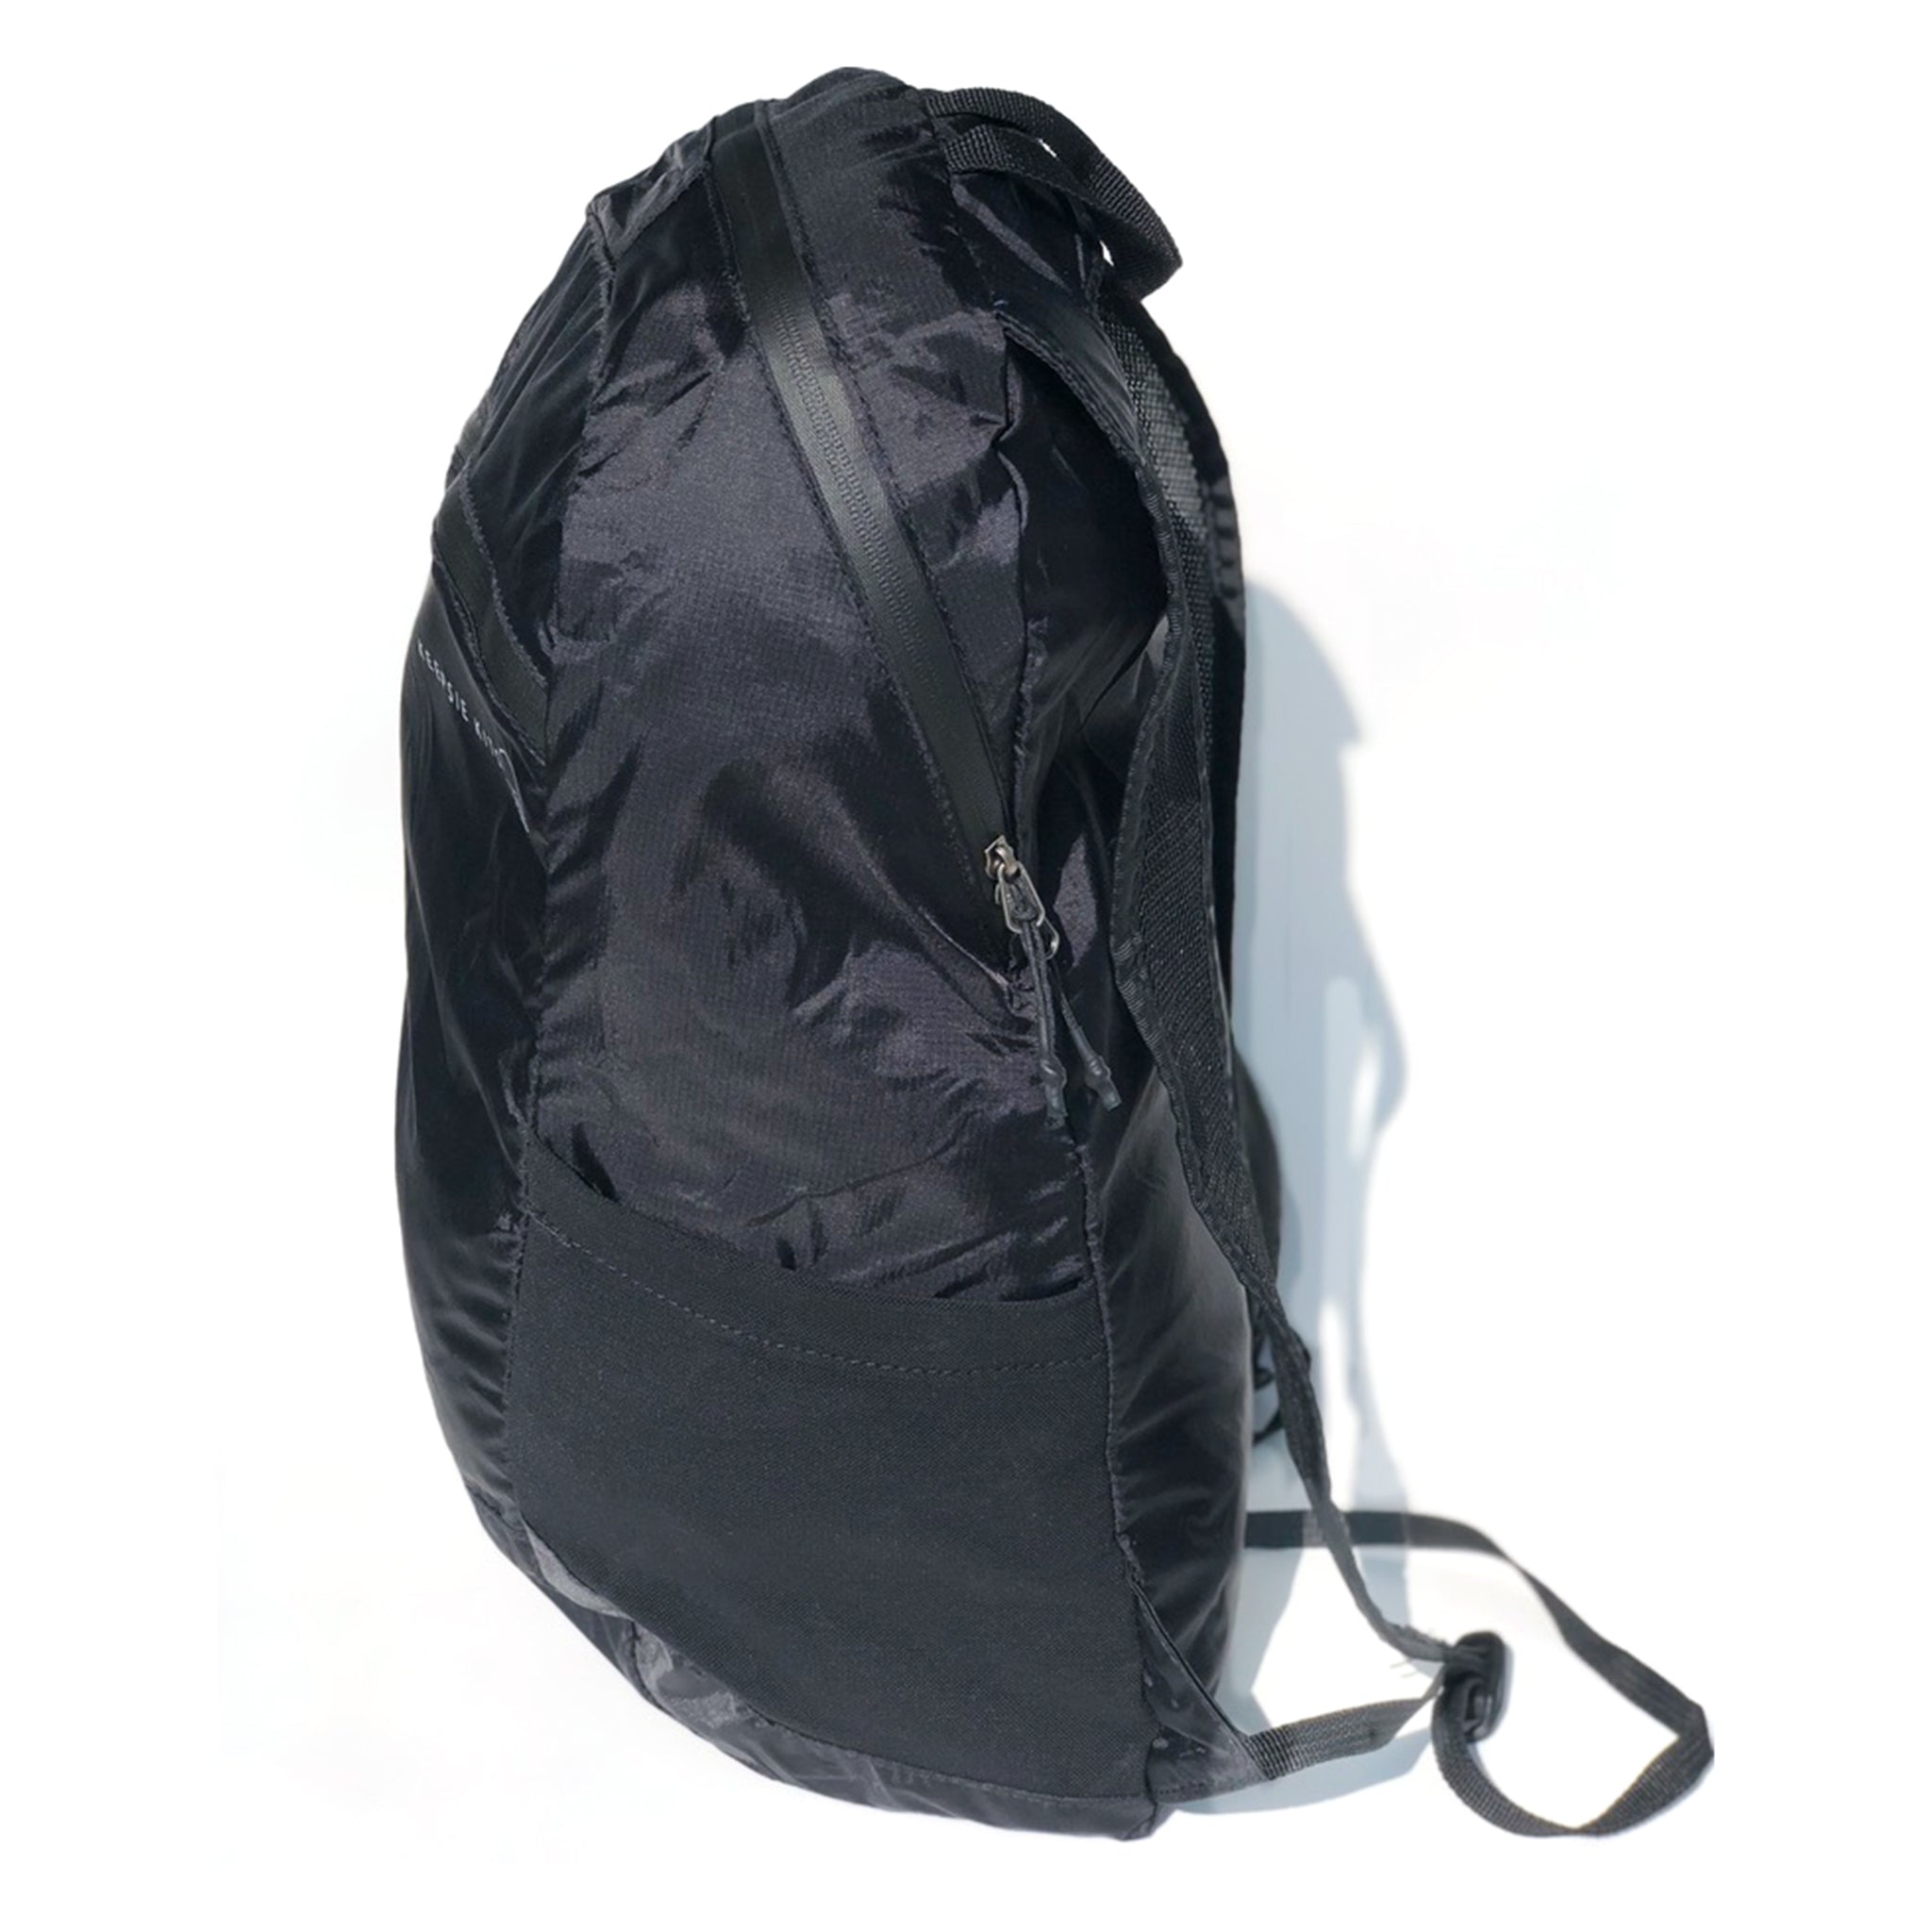 Explore20 Packable Backpack